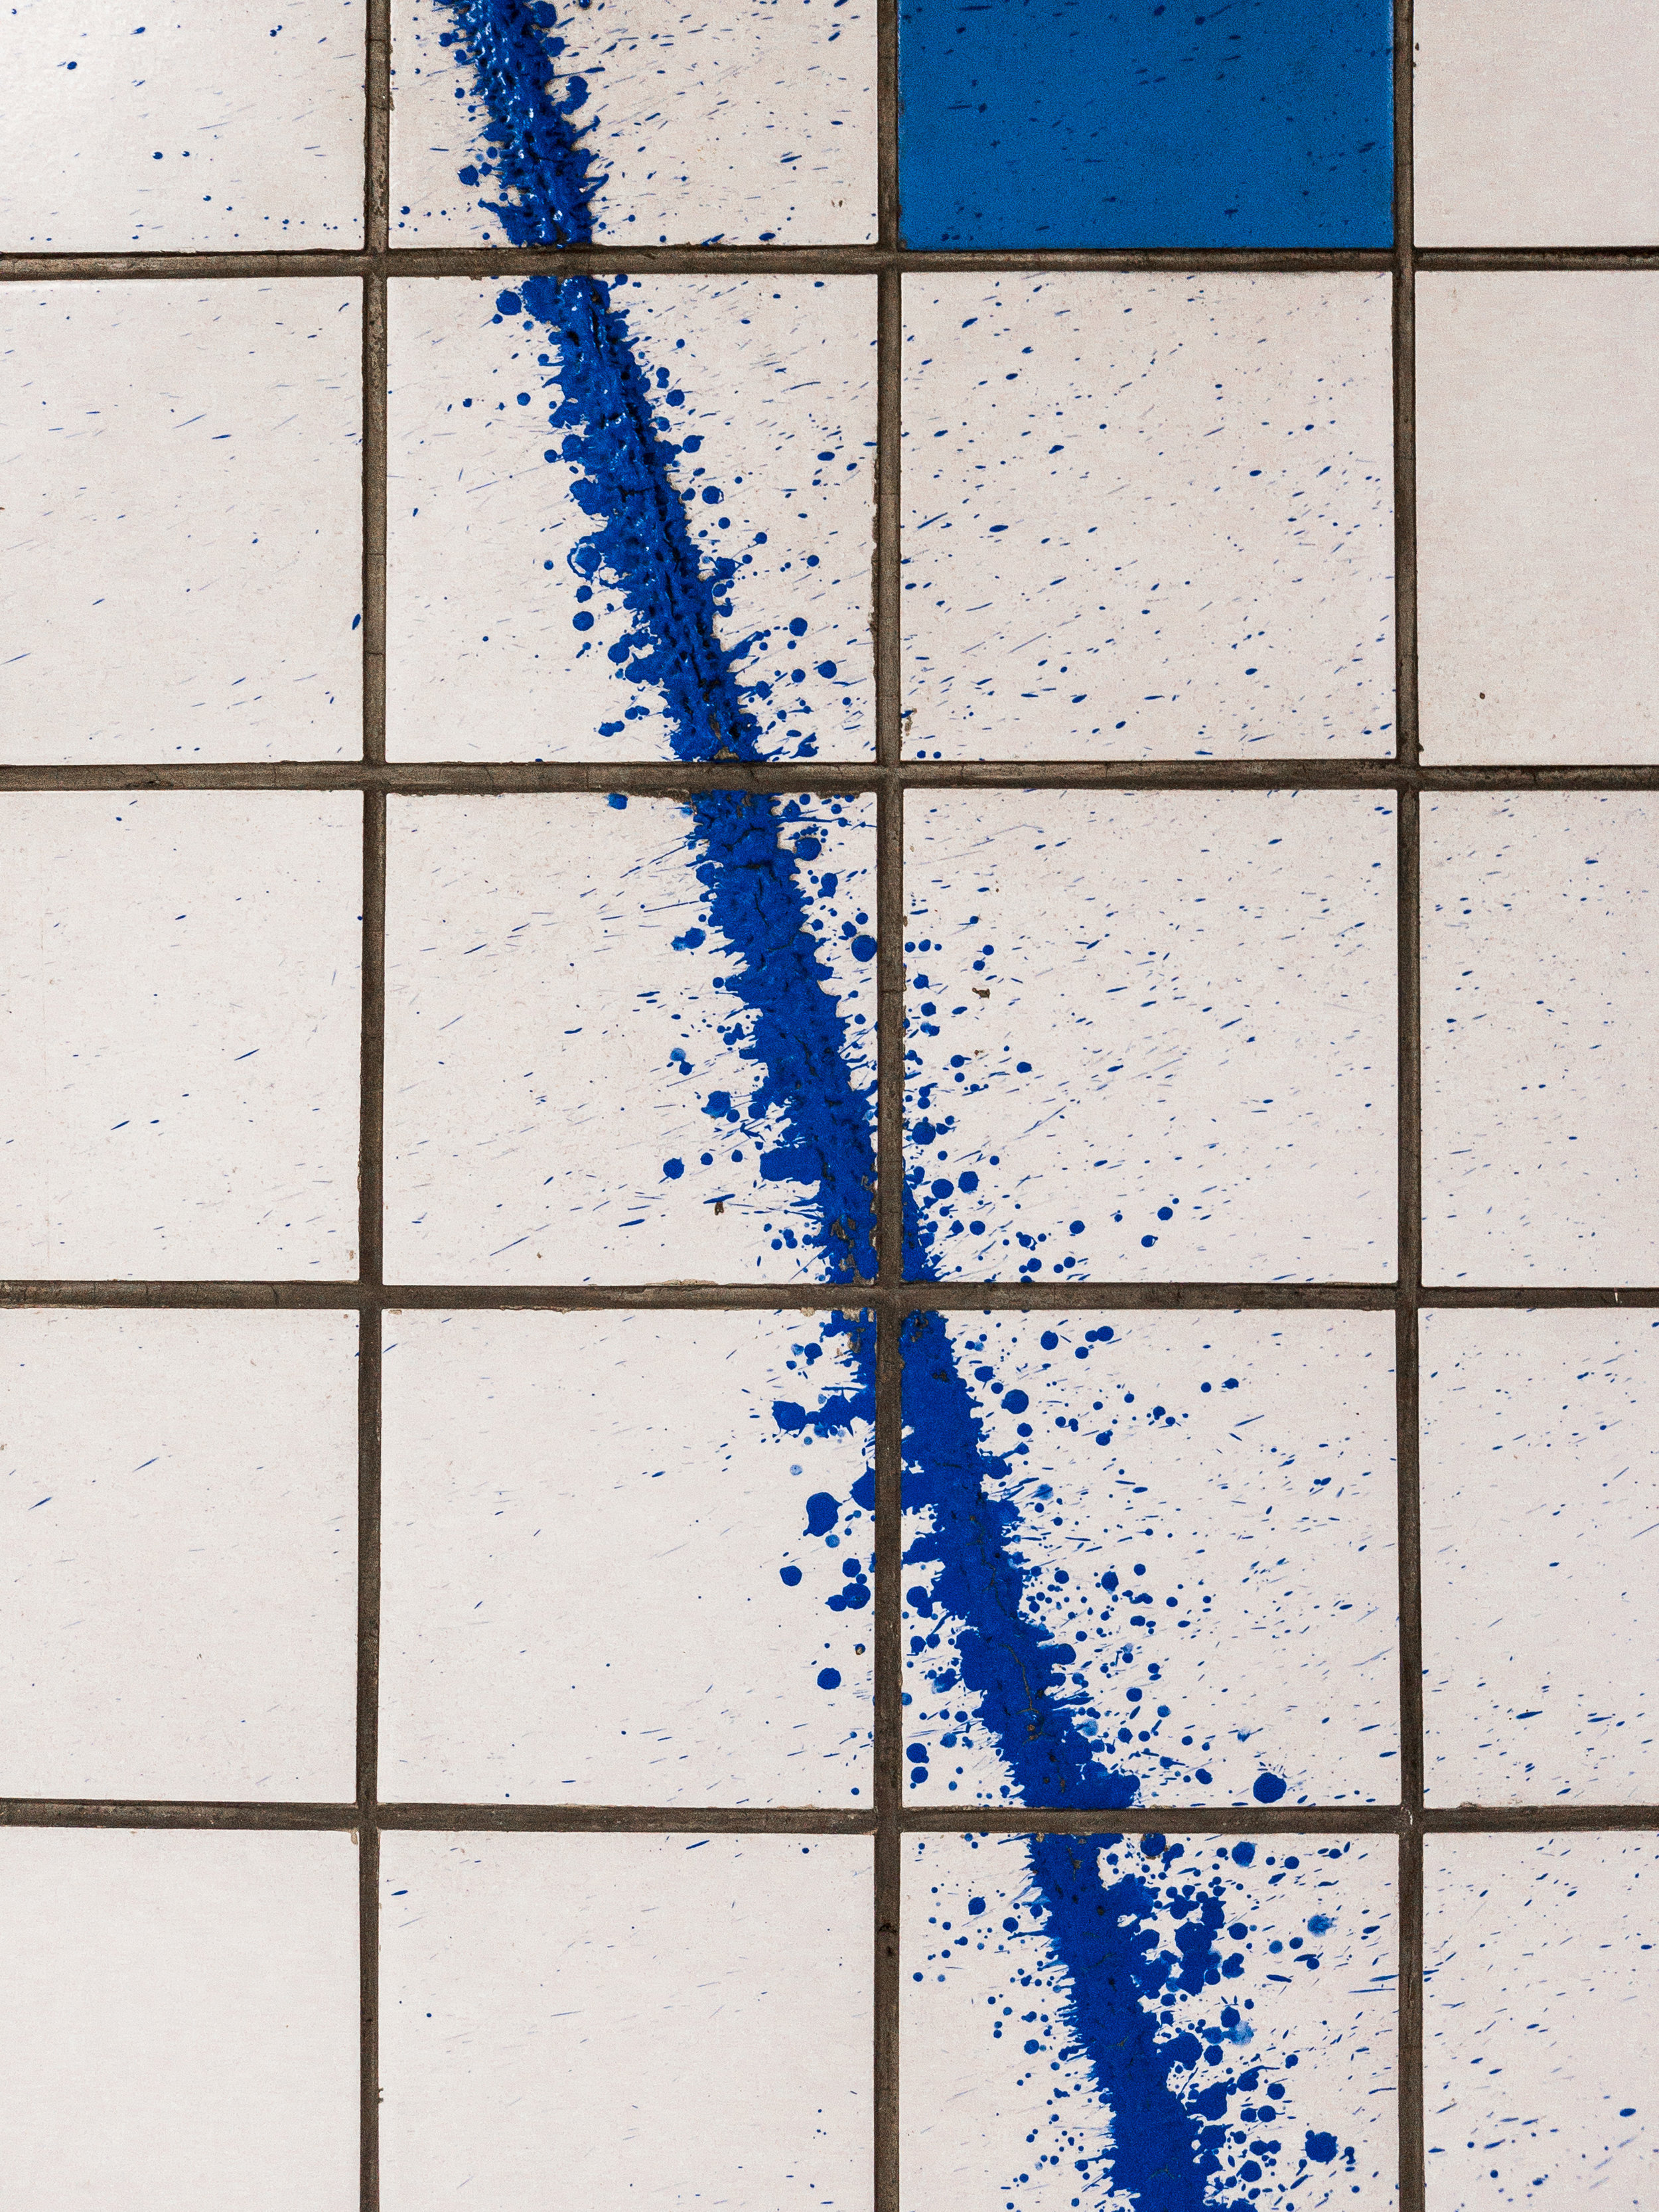 Someone had just splattered this very straight yet messy line over the wall at Chungmuro subway station, using a colour just off that of the accent tiles at an angle that's also a bit off. Really wish I knew what was going on there.